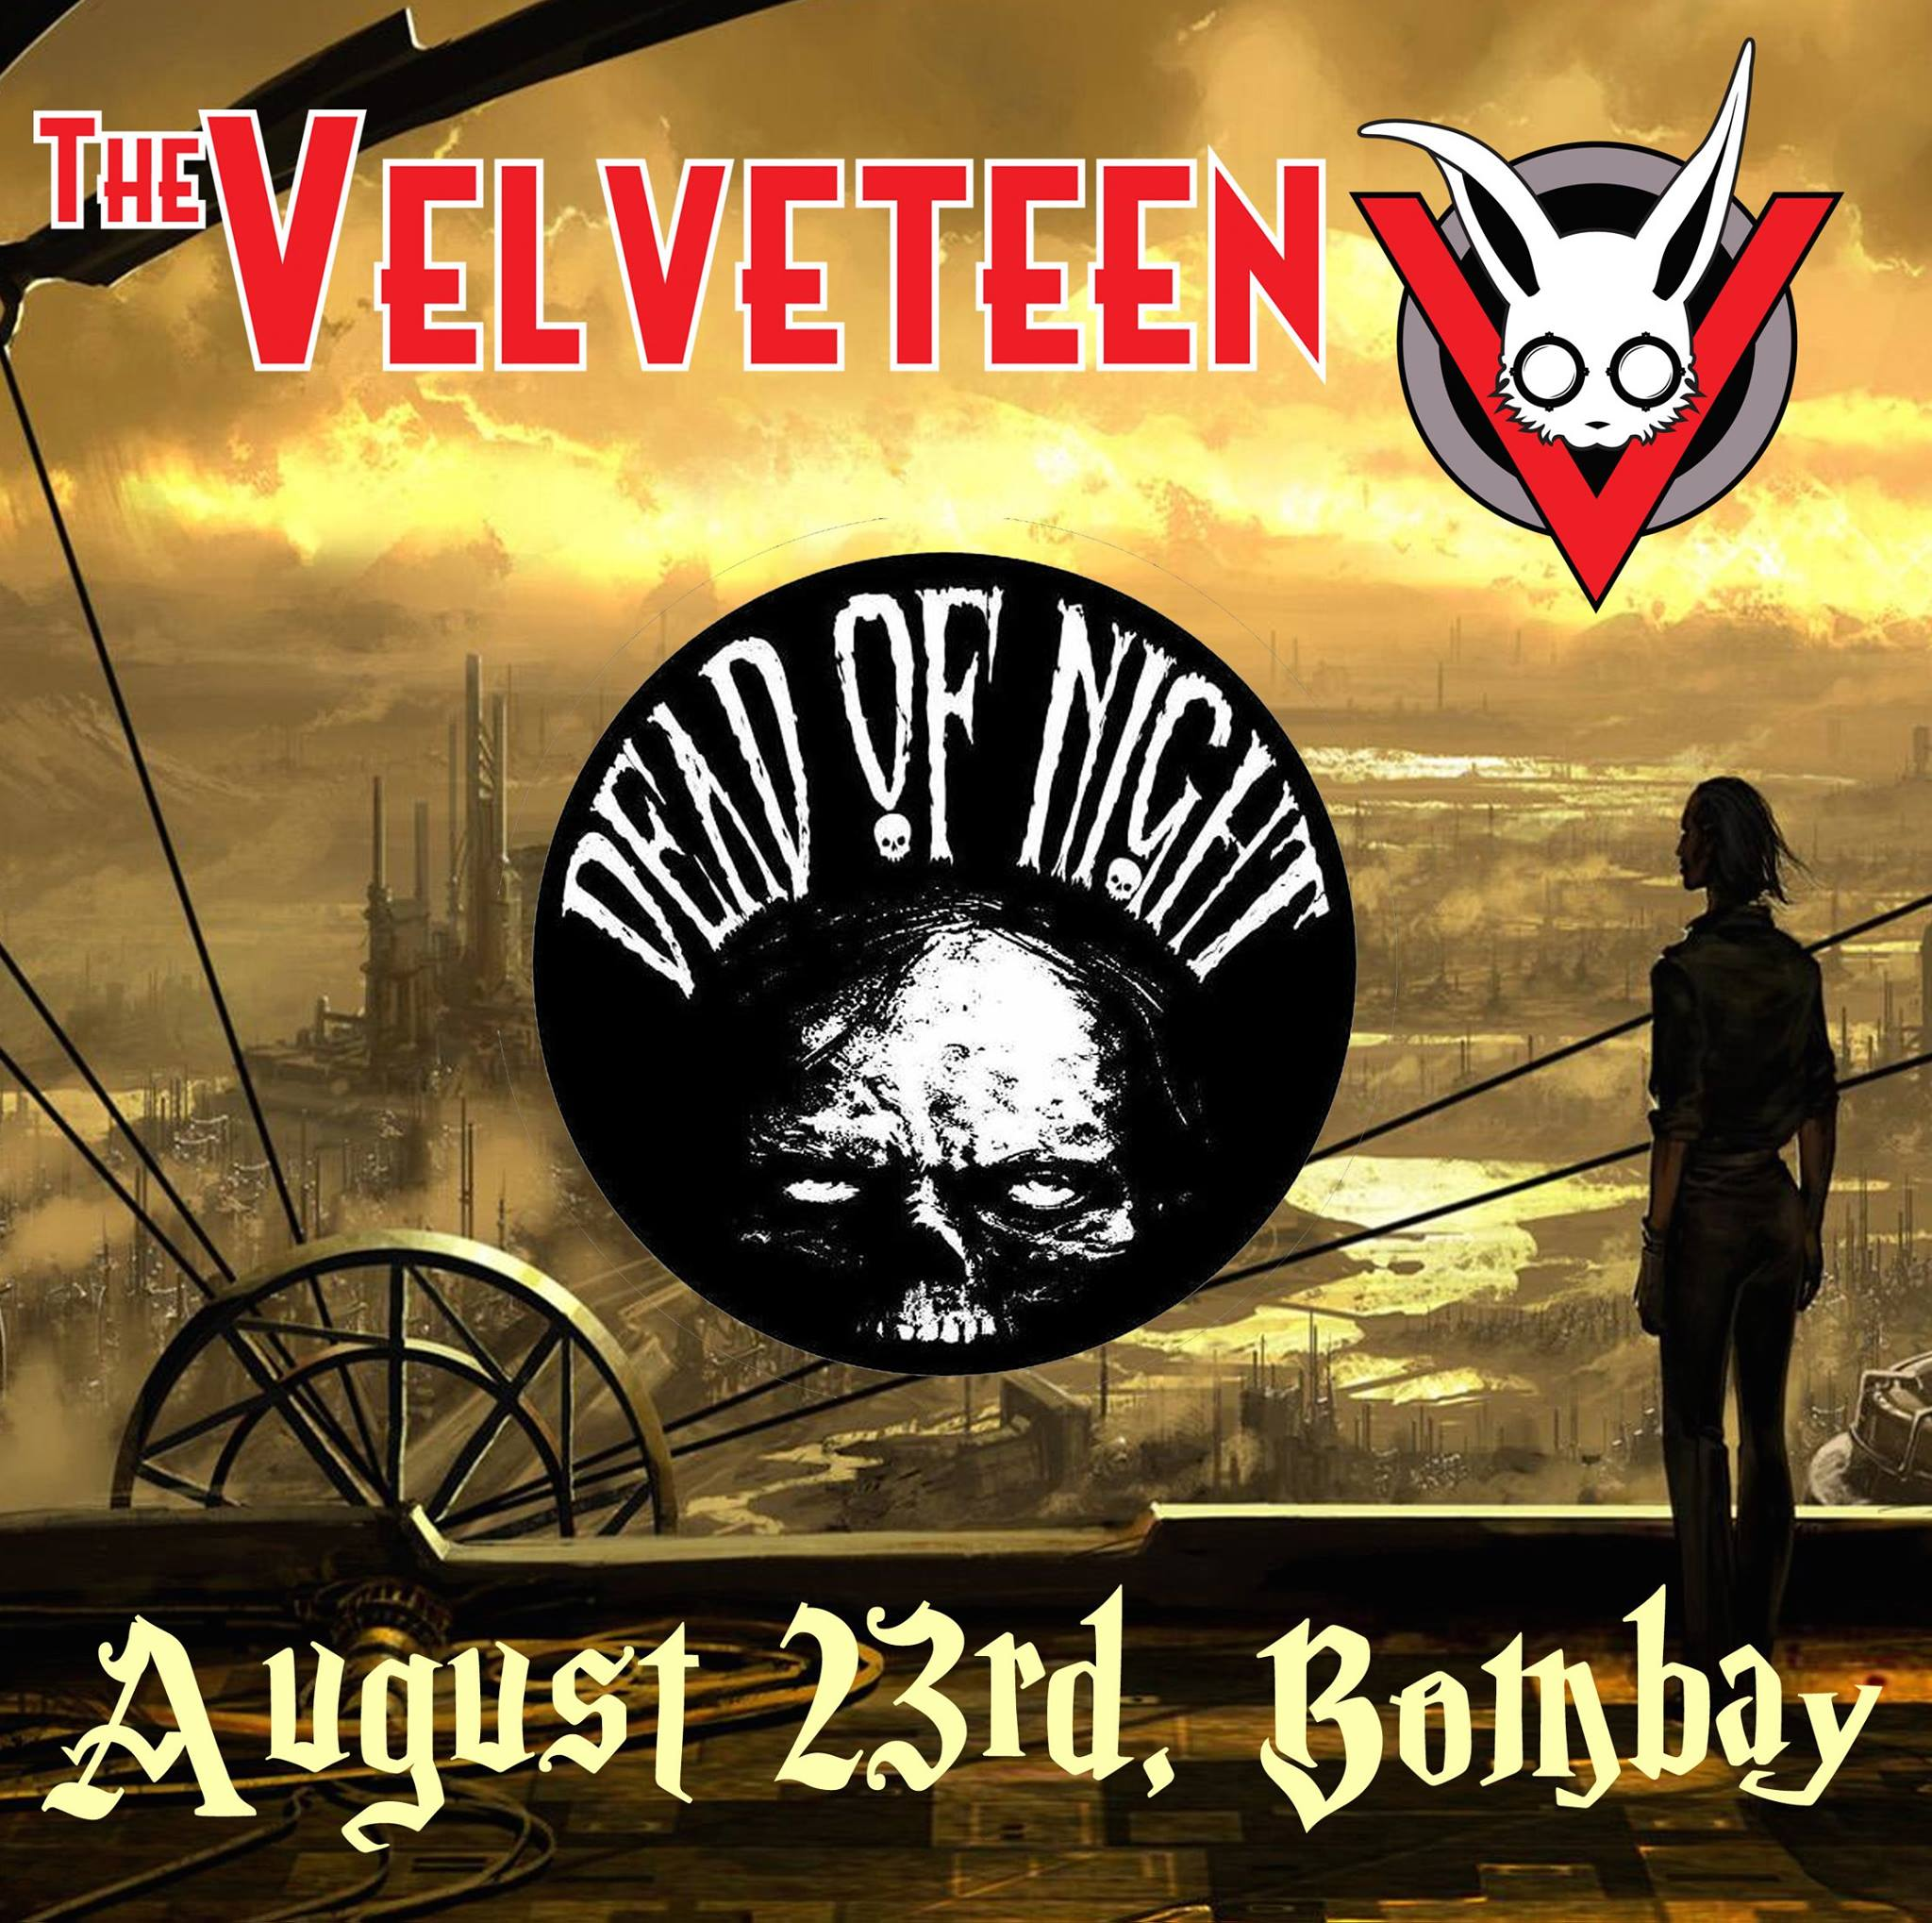 Flyer - Bombay - August 23, 2014 - with Dead of Night